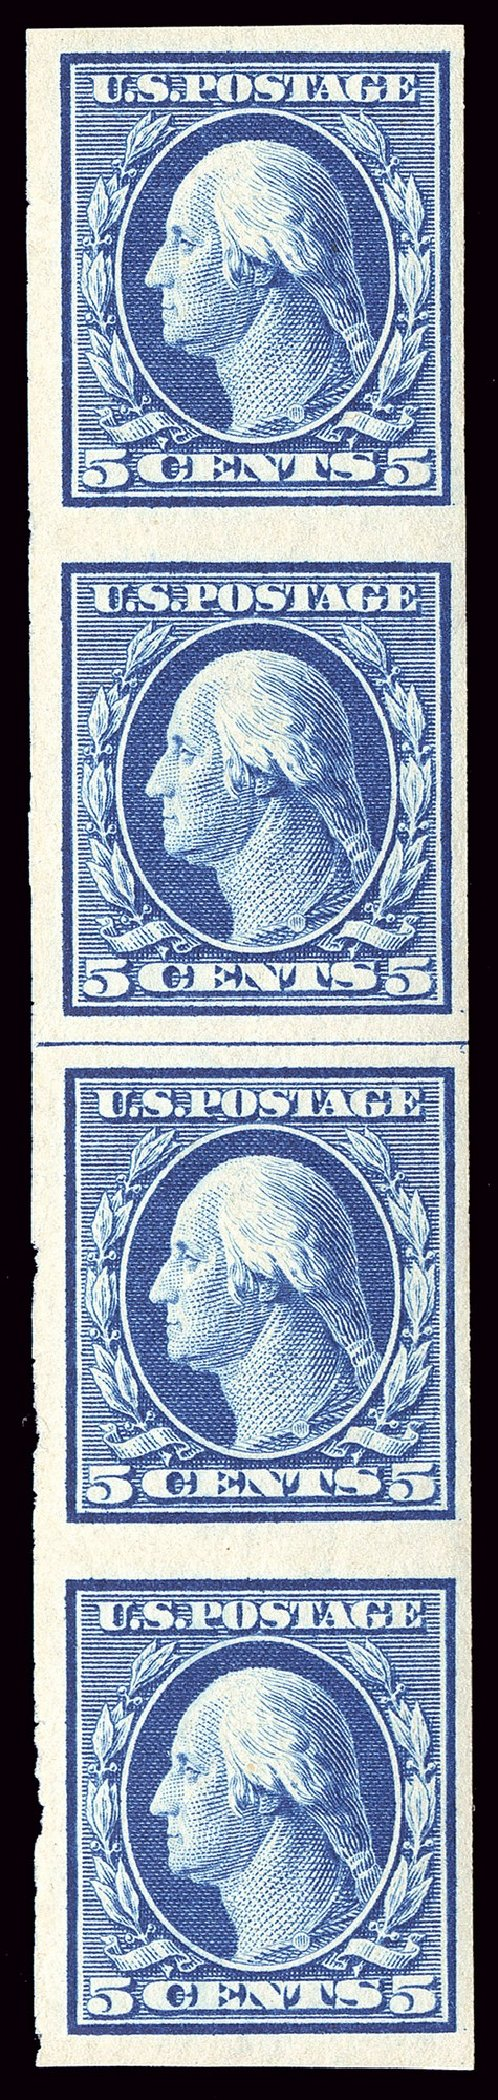 US Stamps Price Scott Cat. #347 - 1909 5c Washington Imperf. Spink Shreves Galleries, Jan 2014, Sale 146, Lot 371